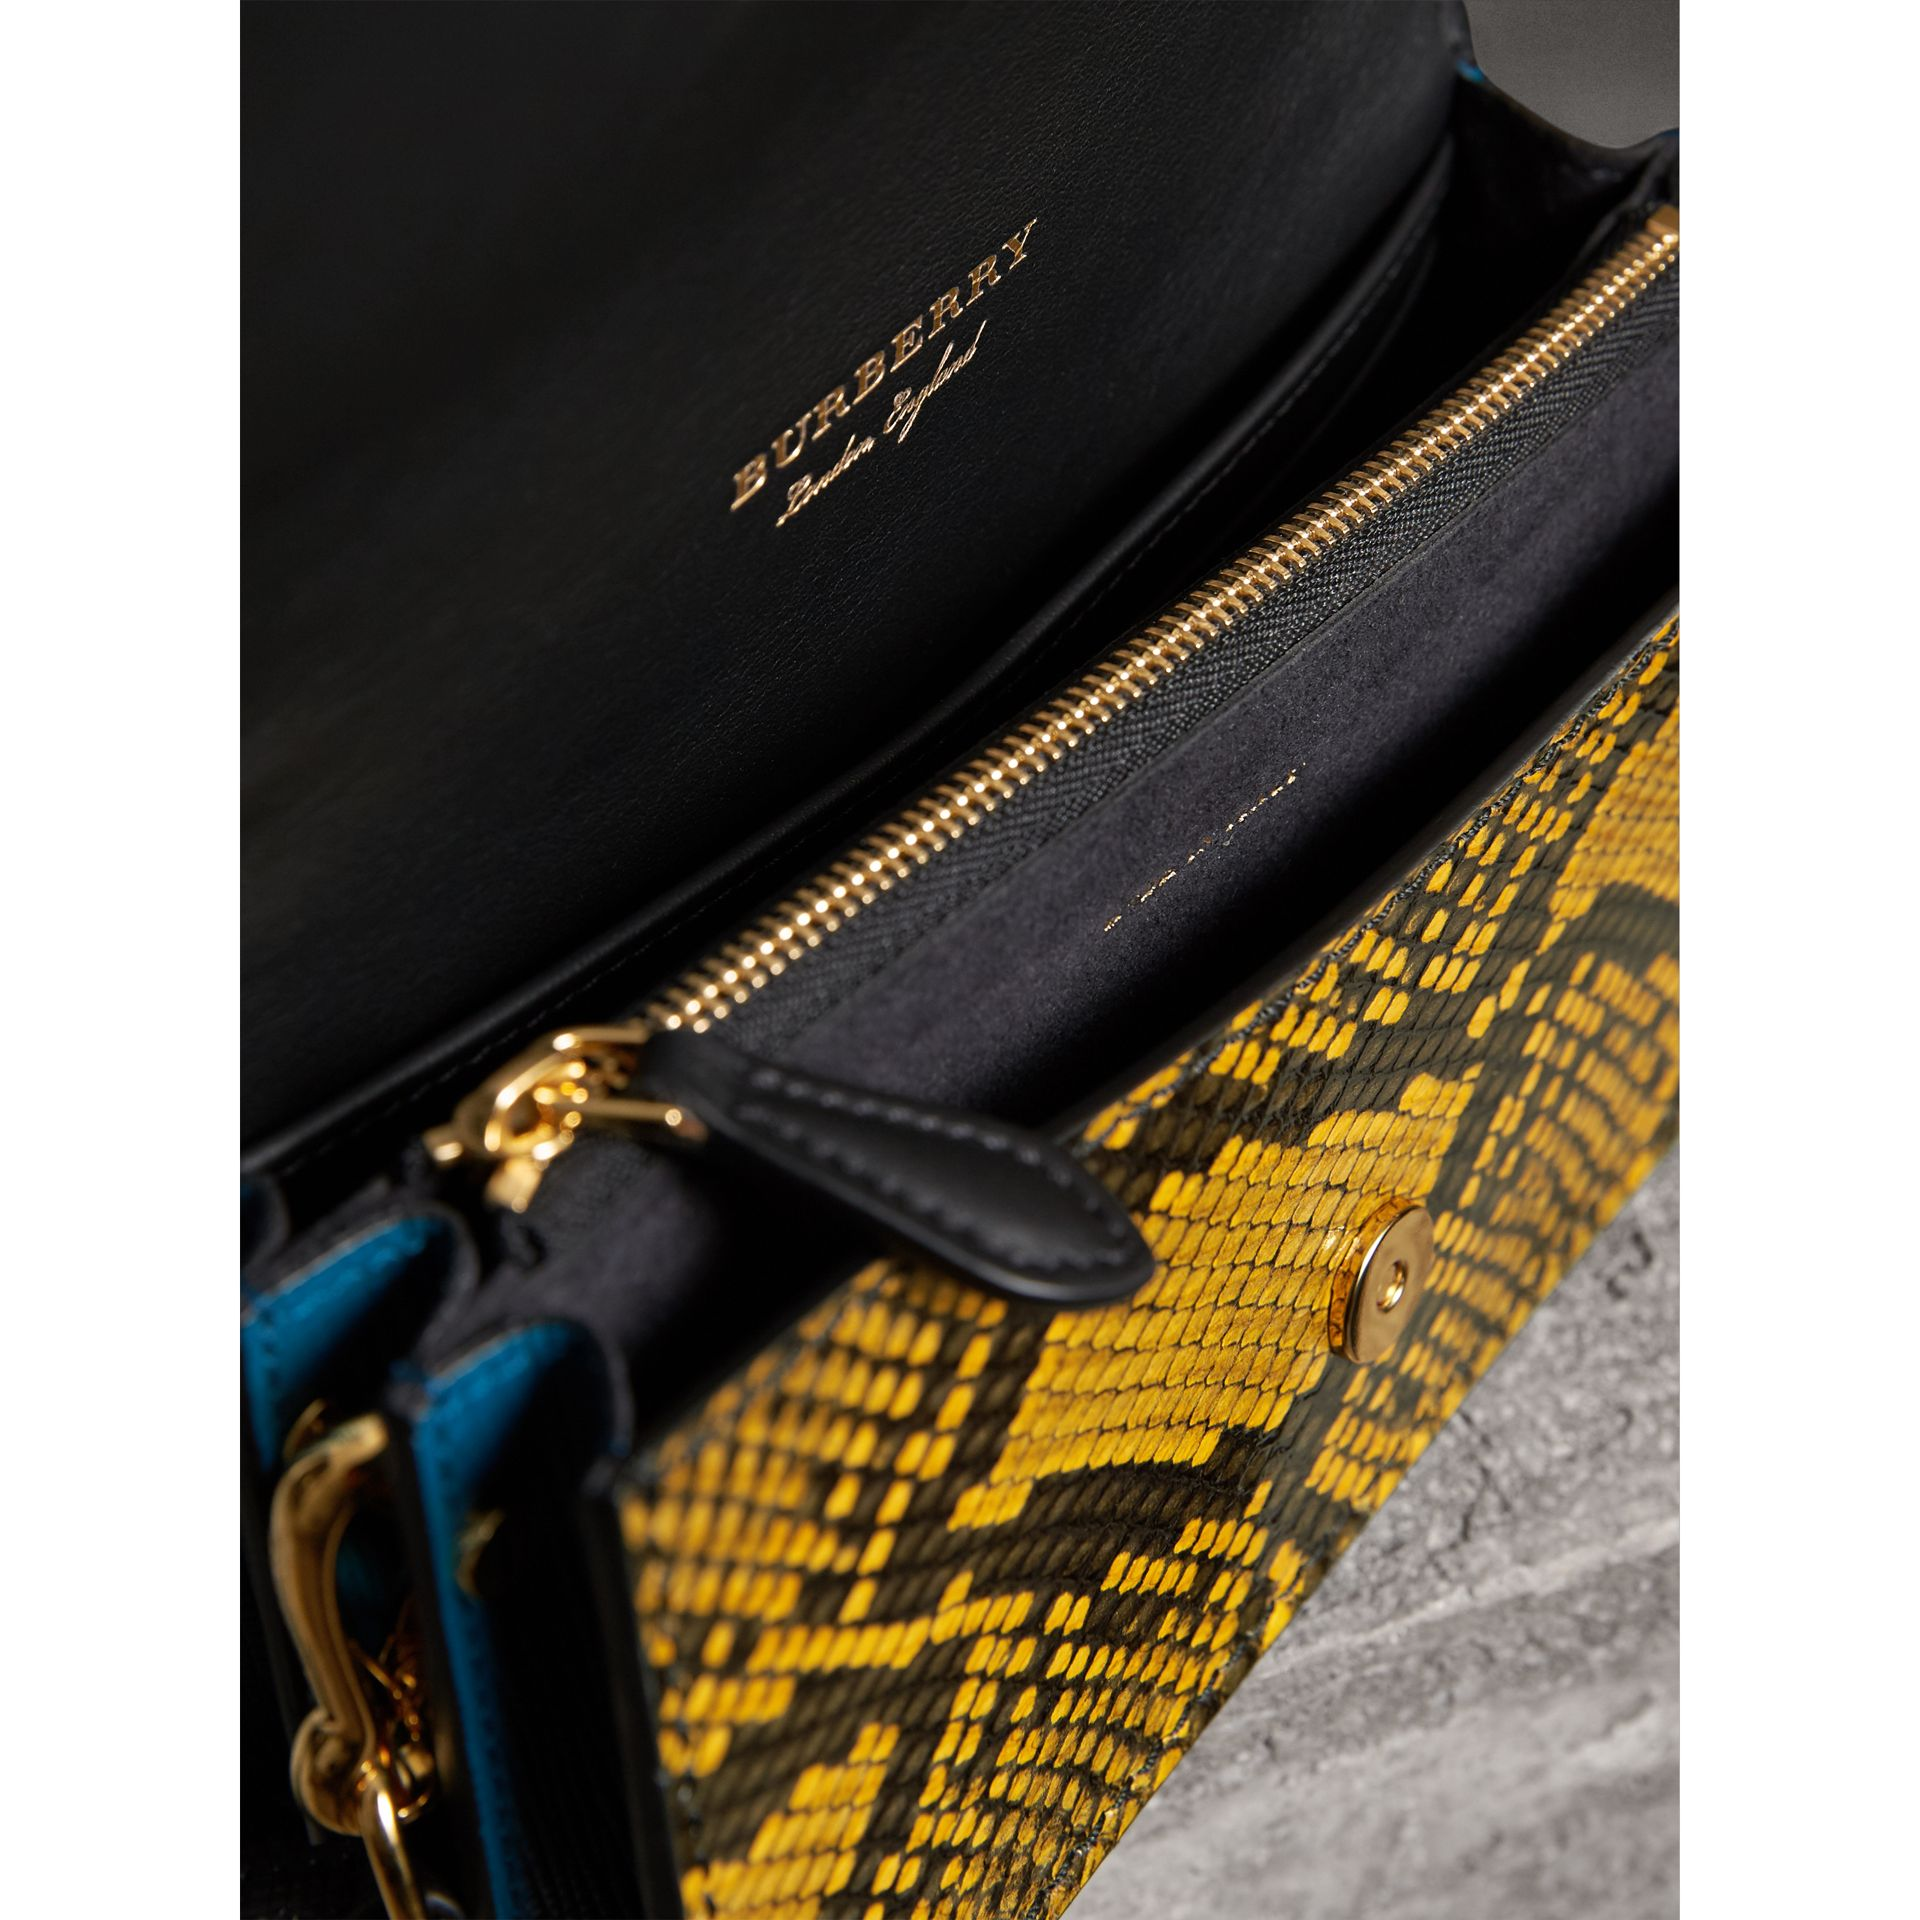 Sac The Patchwork en cuir exotique, maille de laine et cachemire (Jaune Ambre) - Femme | Burberry - photo de la galerie 4